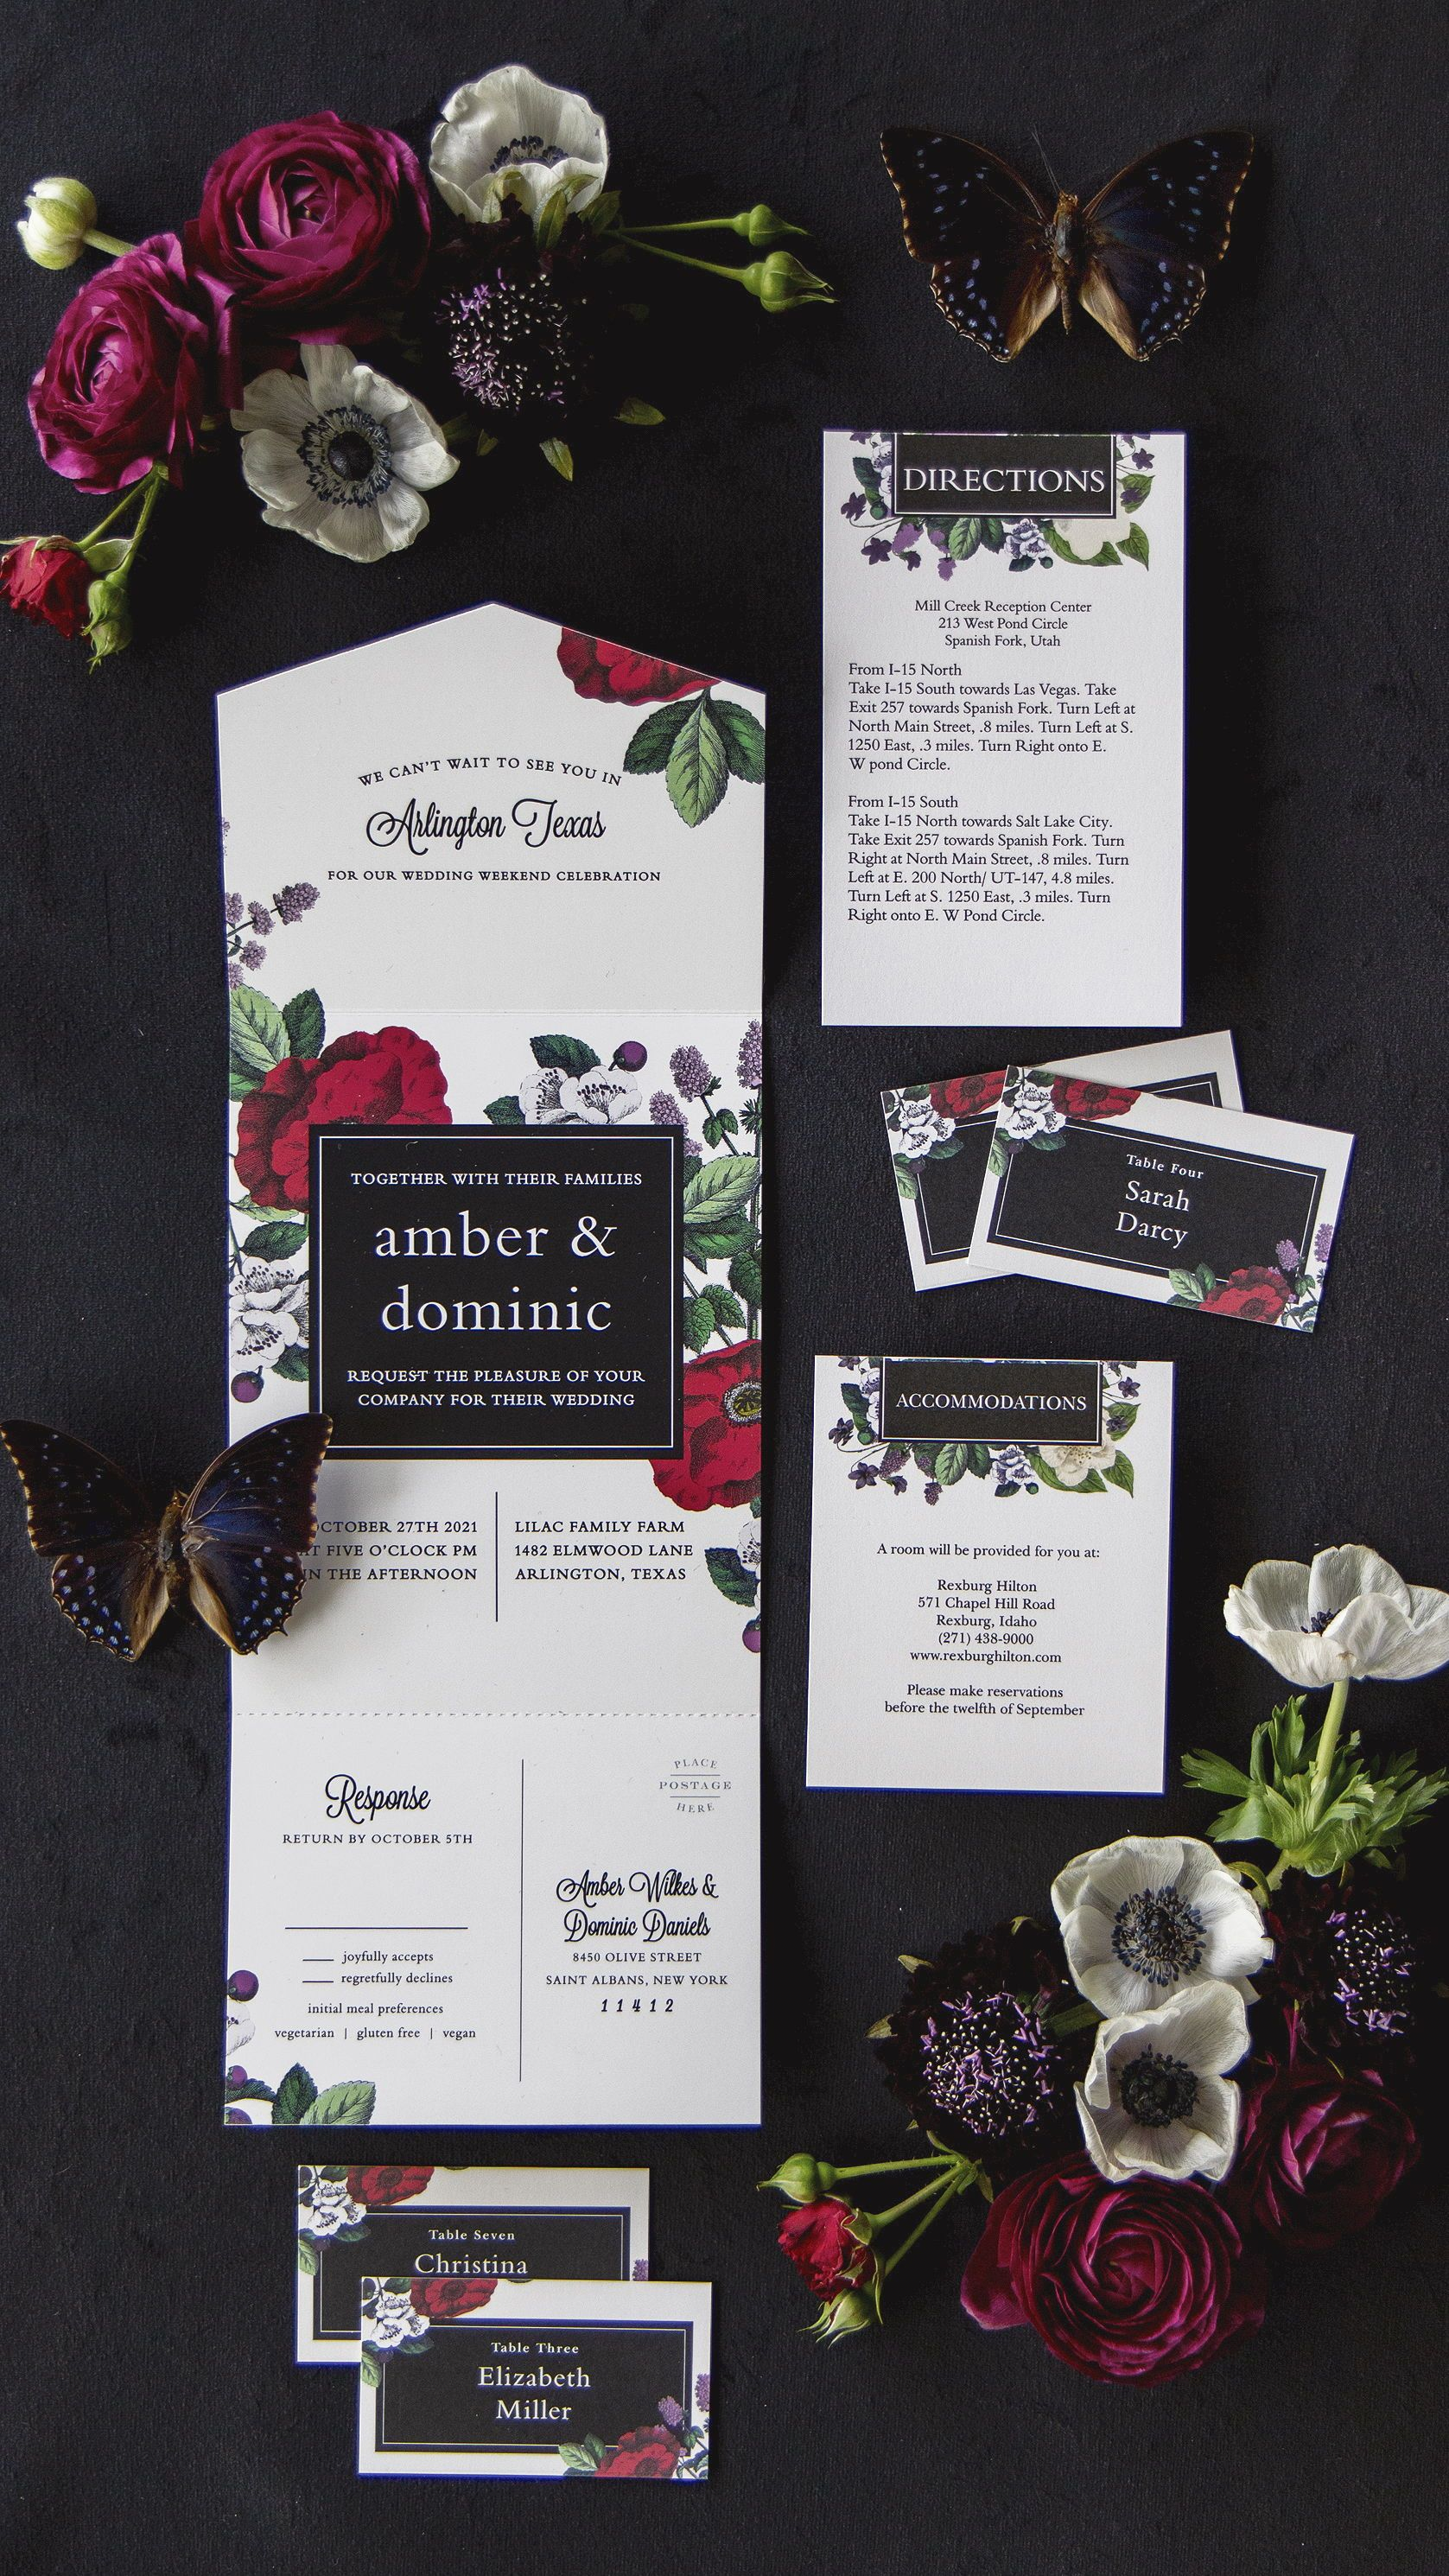 Vintage Botanical Seal And Send Wedding Invitations Goth Wedding Invitations Jewel Tone Wedding Invitations Moody Wedding Invitations Botanical Wedding Theme